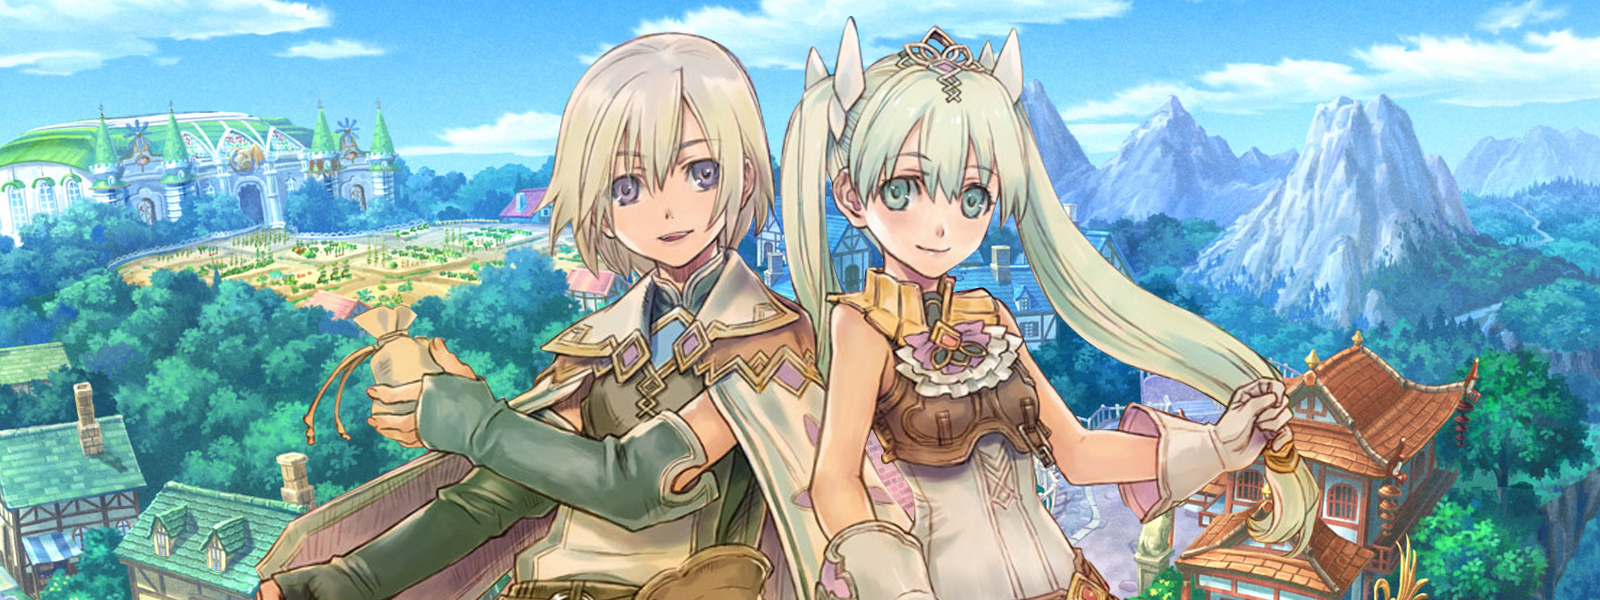 dating forte rune factory 4 Rune factory 4 is worth the grind of exploring its systems — which include multiple kinds of crafting, farming and even dating, i was hooked.